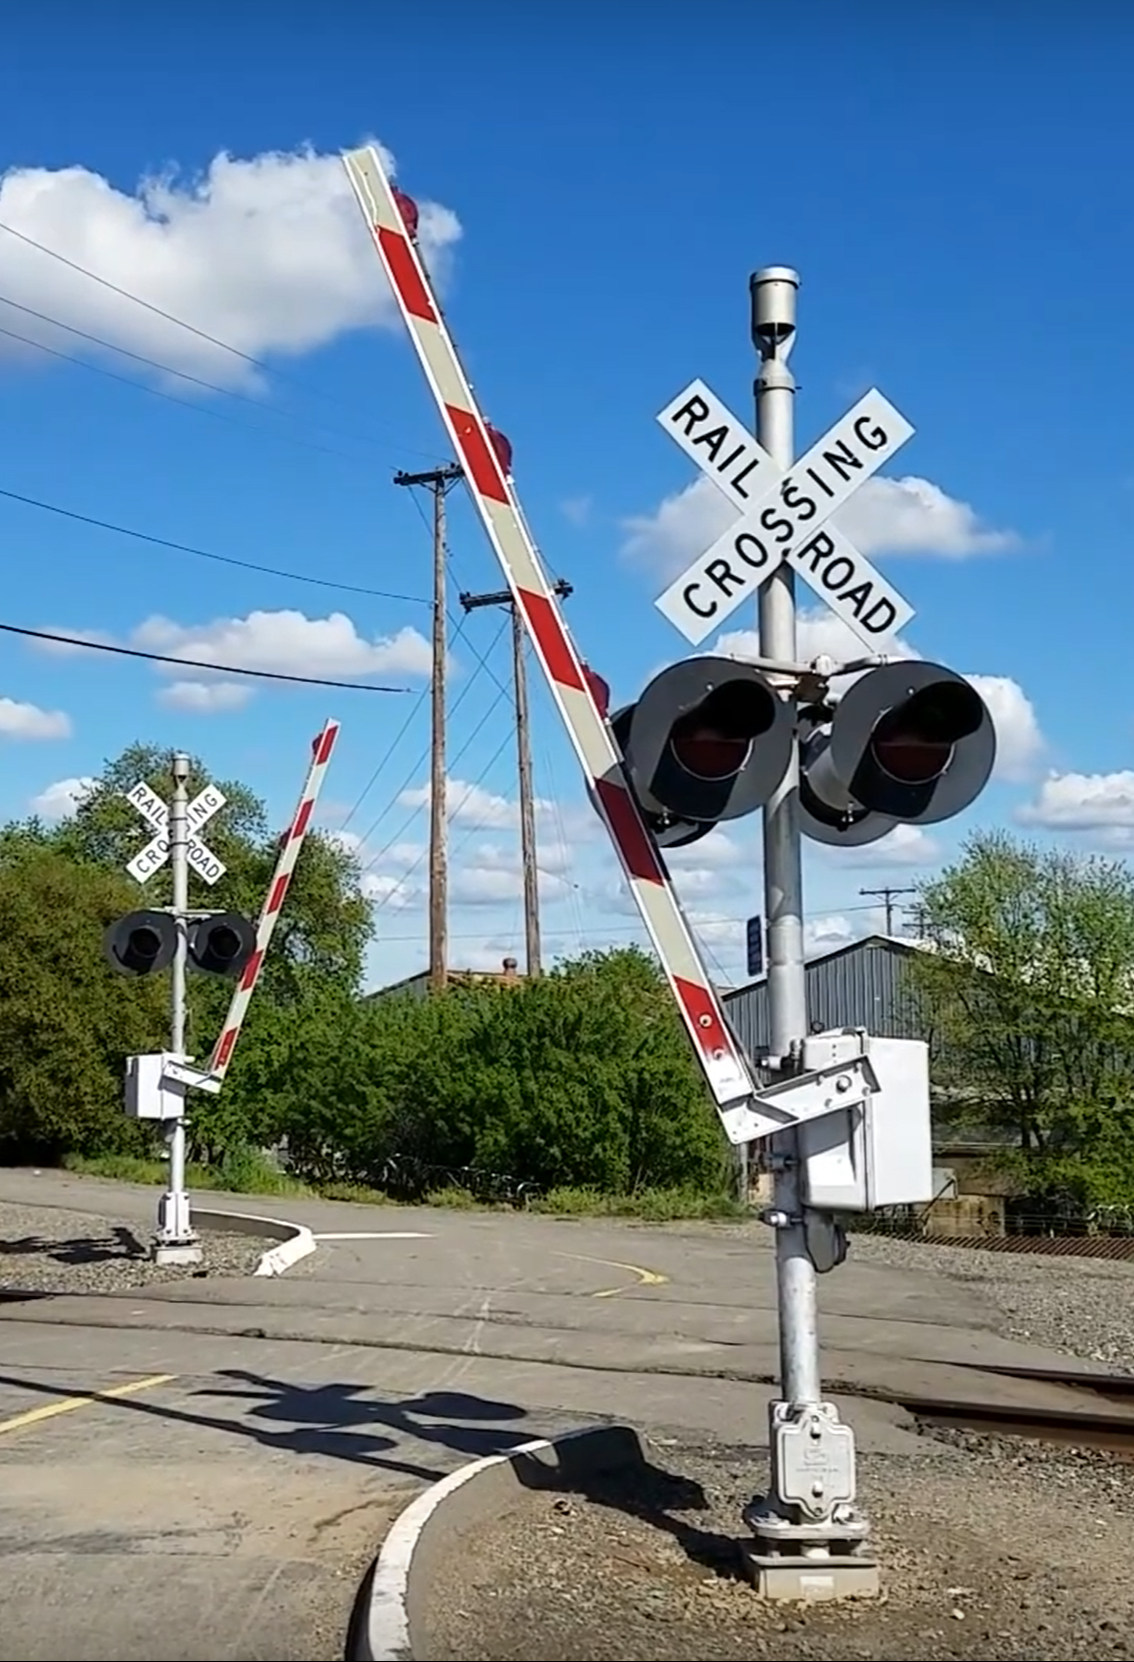 Solar Powered Railroad Crossing Signal | Solar Powered Industrial Railroad Crossing Signal | Industrial Area Crossing Signal.